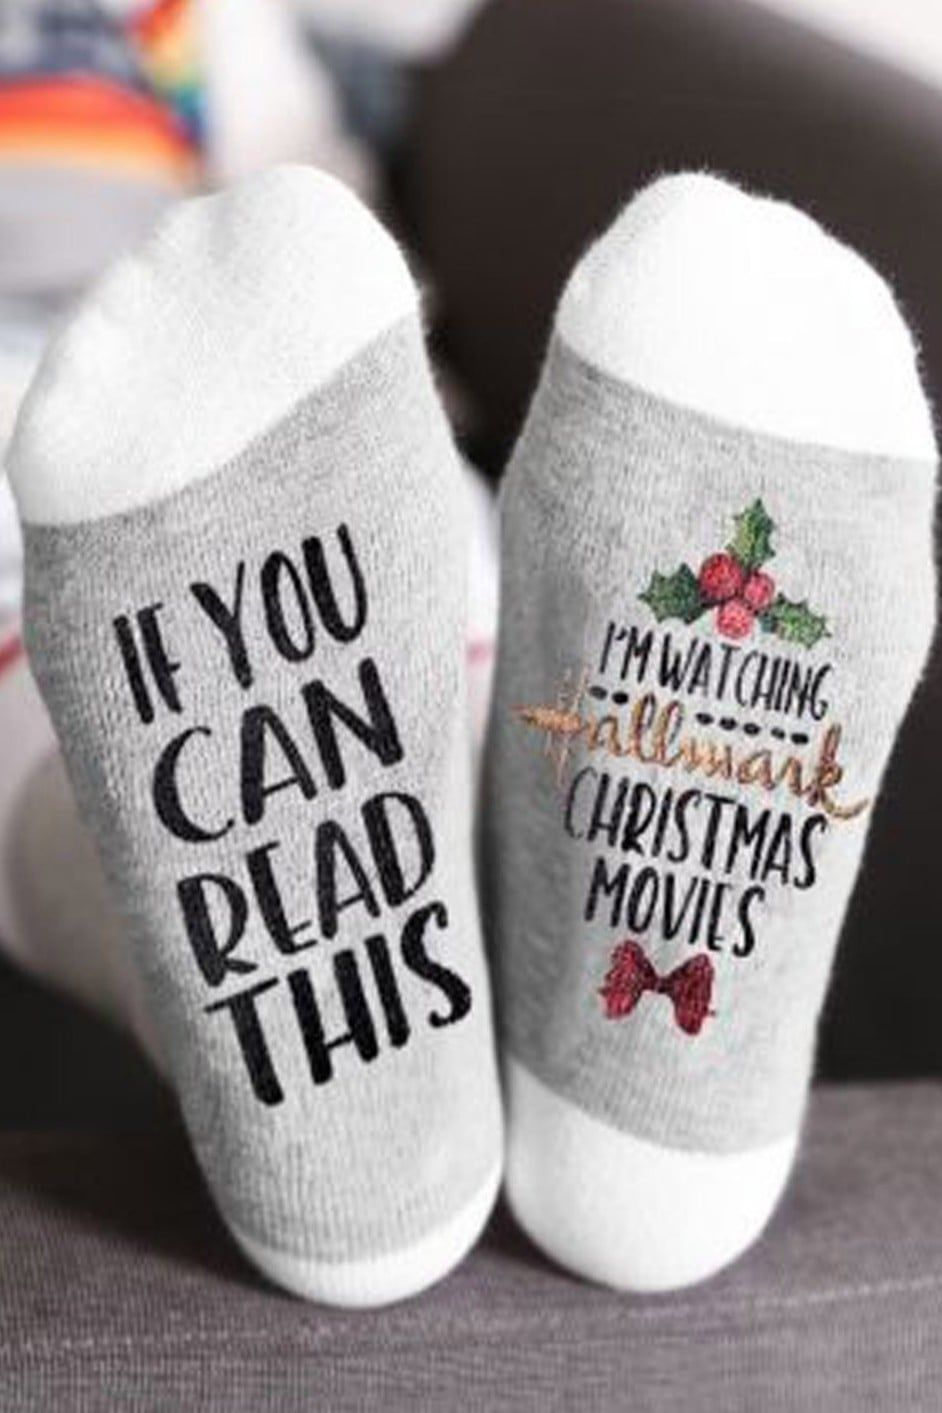 Constantly Watching Hallmark Movies These Festive Socks Are For You Hallmark Christmas Movies Hallmark Christmas Christmas Movies